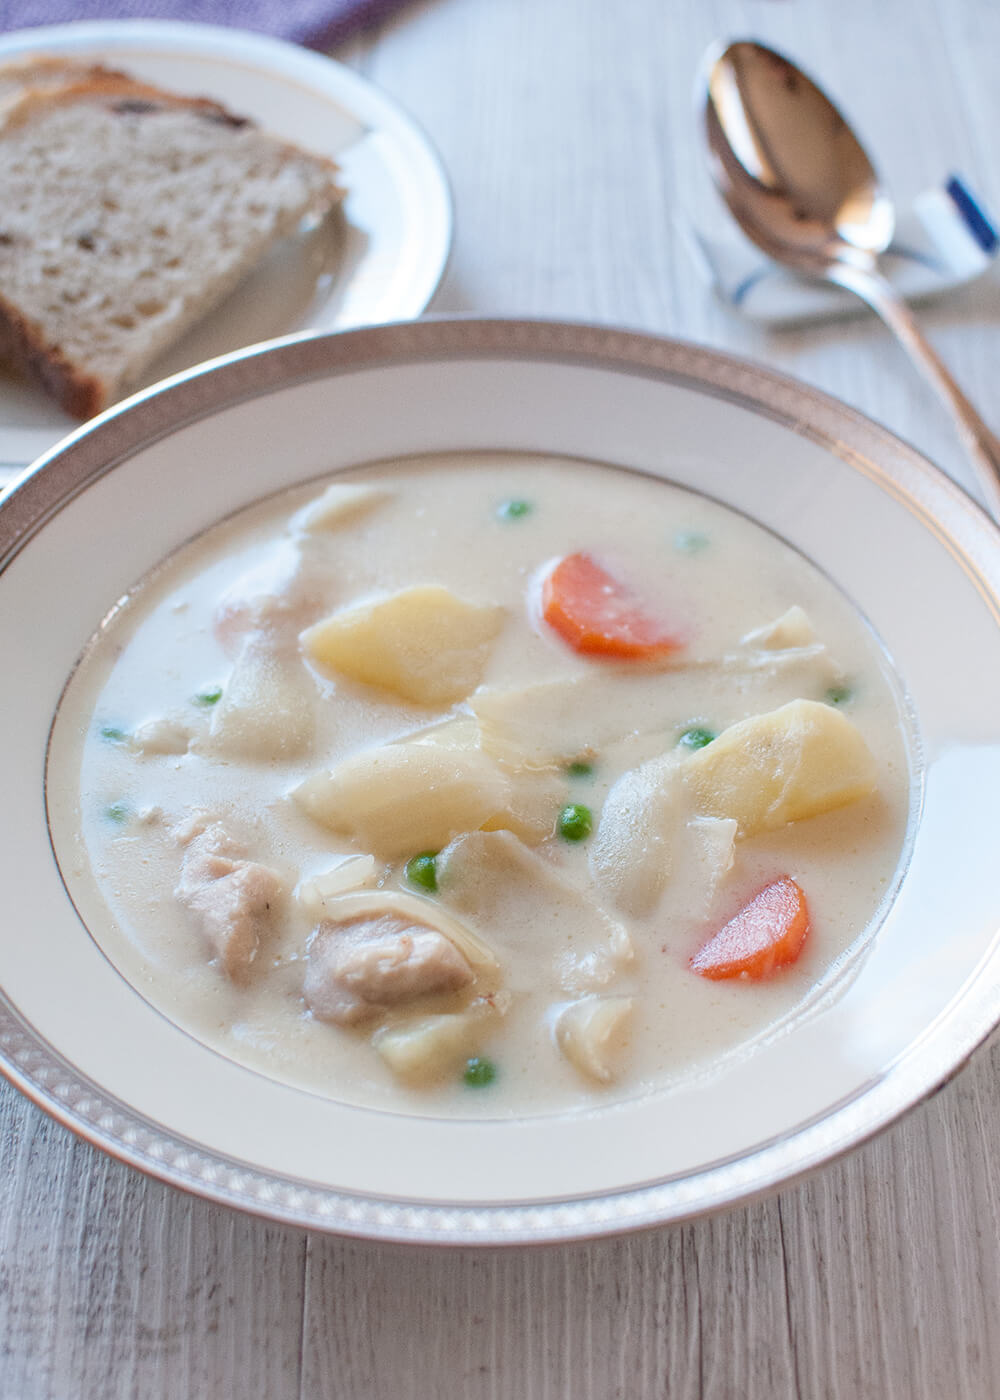 This is a white coloured stew made from béchamel sauce. It's so colourful with the chicken, carrots, potatoes, onions and green peas in it. This stew is also called 'Cream Stew' although no cream is added to the sauce and it is not as heavy as it might look.